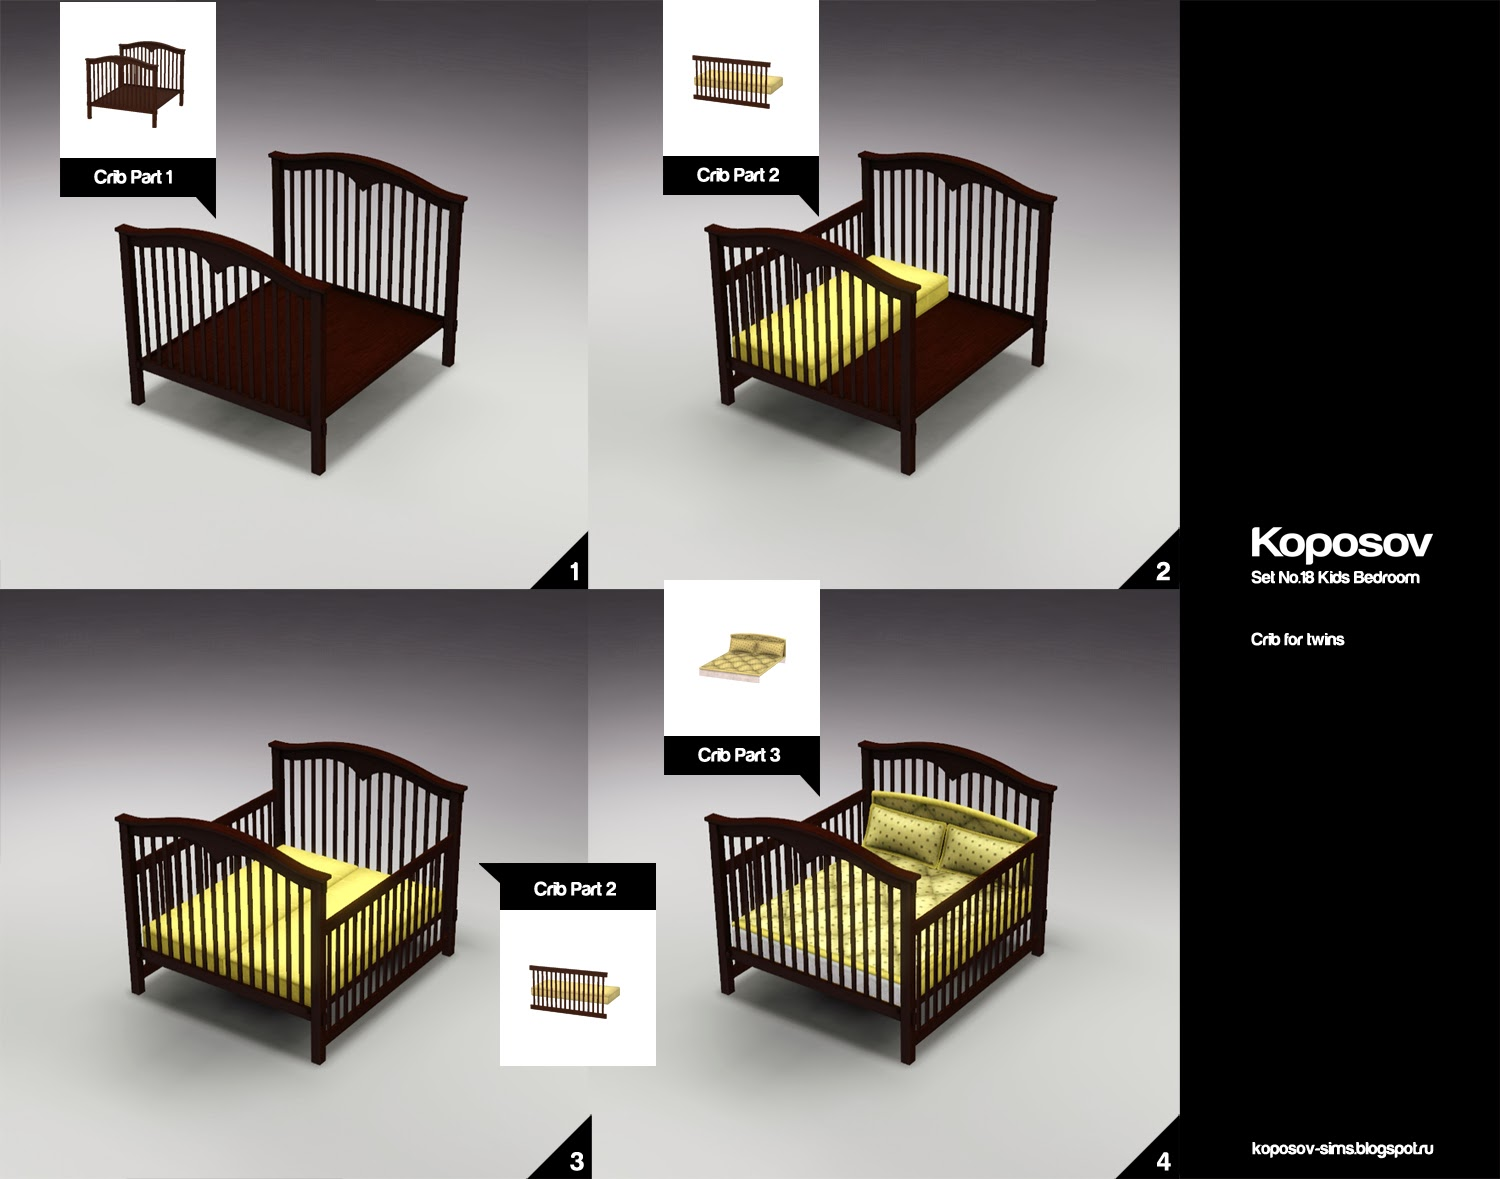 Koposov Objects For The Sims Set No 18 Kids Bedroom